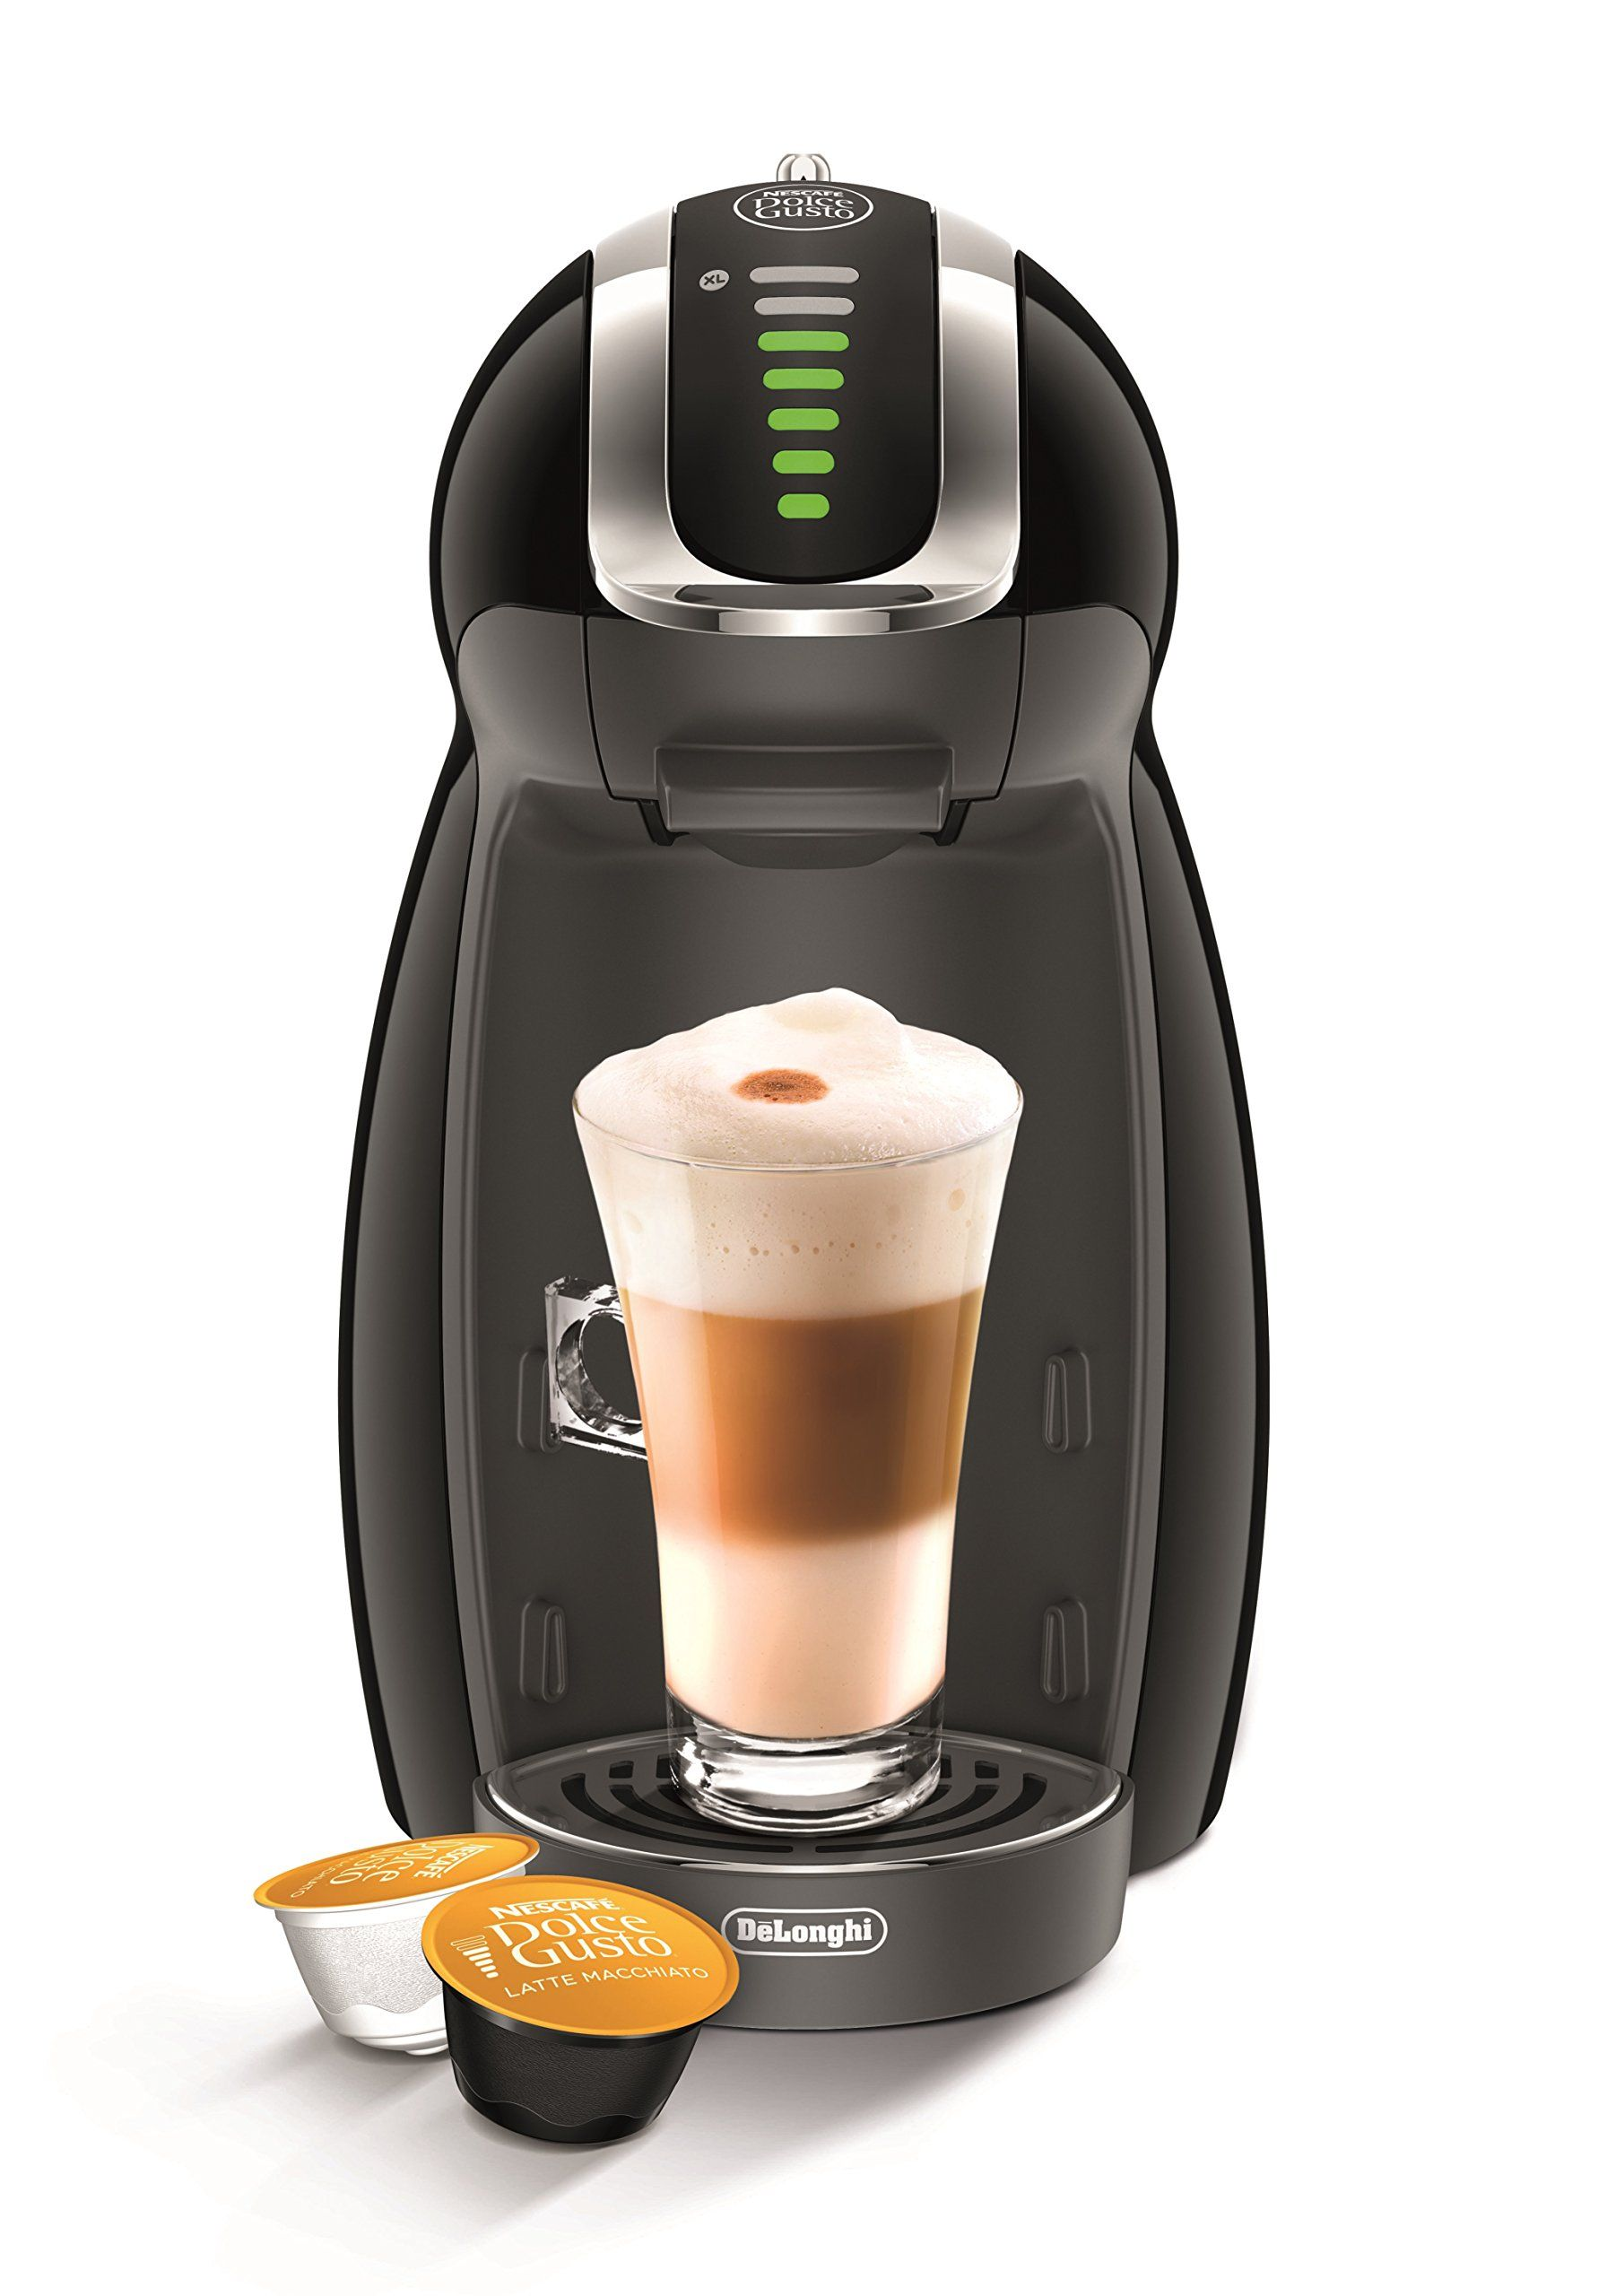 De'Longhi Nescafe Dolce Gusto Genio 2 Automatic Play and